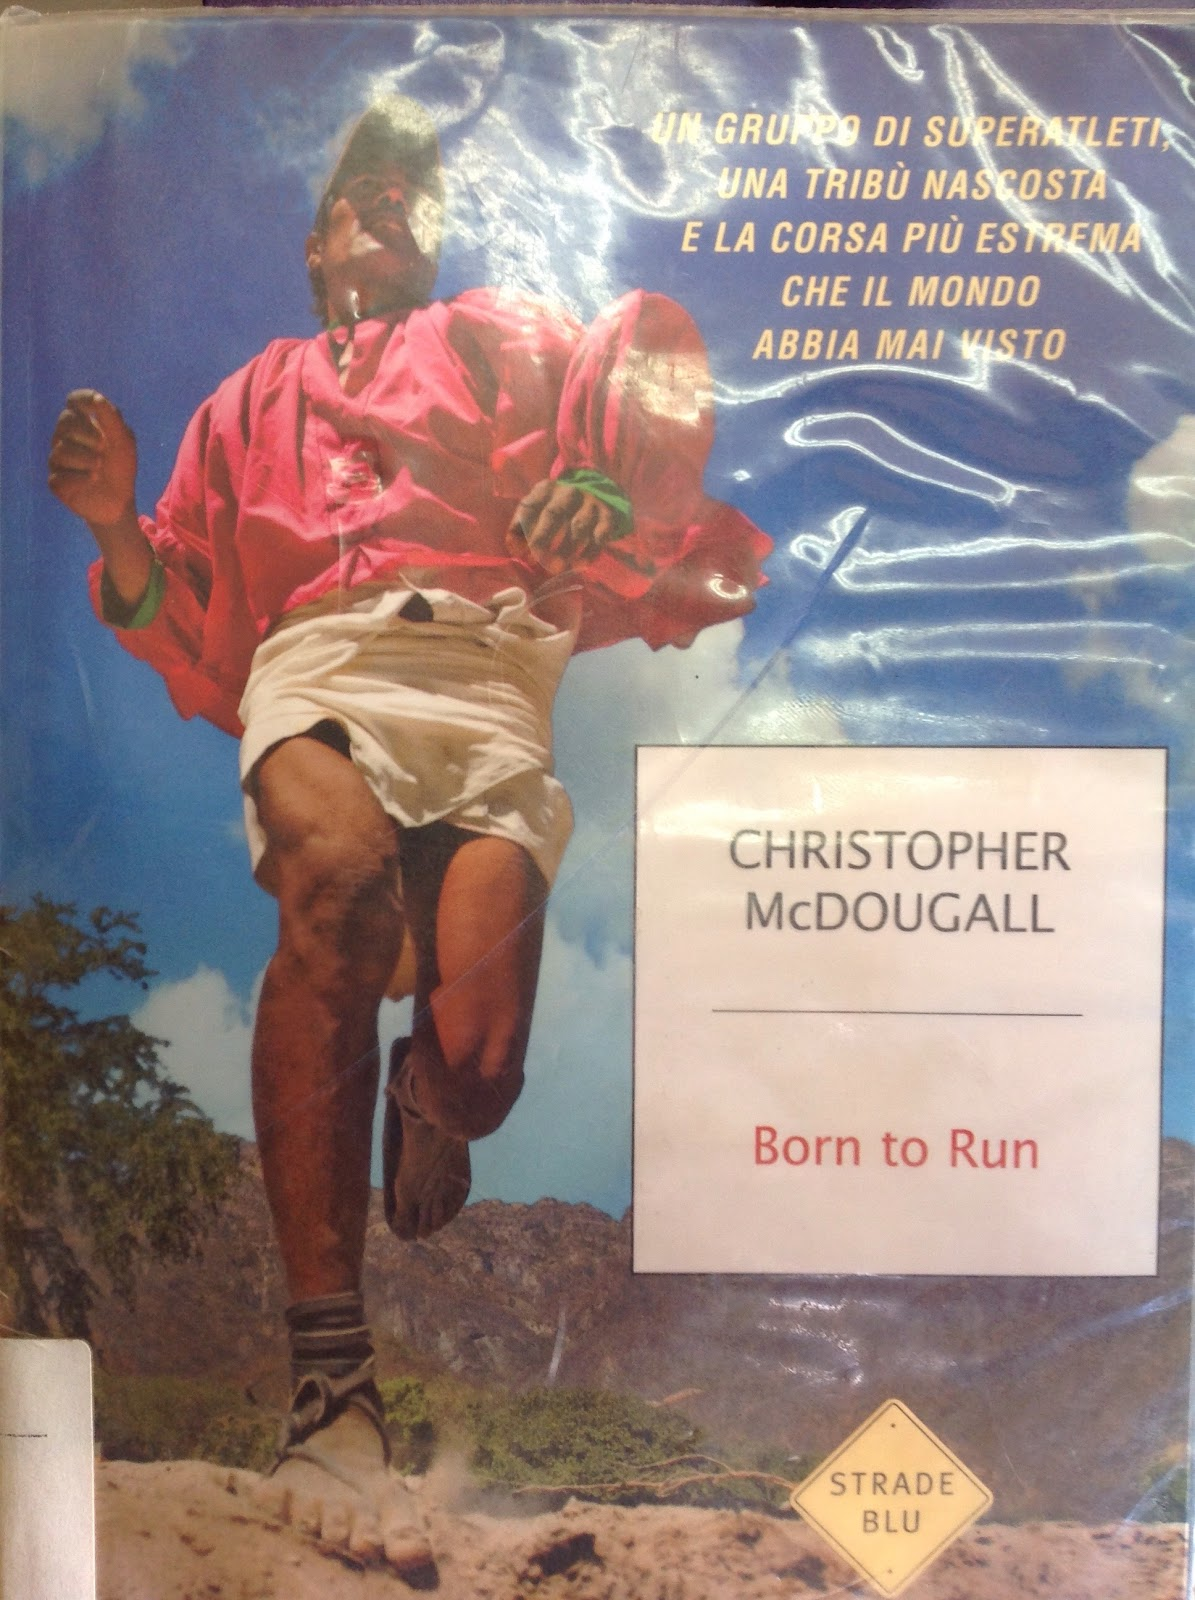 born to run mcdougall Watch video christopher mcdougall explores the mysteries of the human desire to run how did running help early humans survive -- and what urges from our ancient ancestors spur us on today mcdougall tells the story of the marathoner with a heart of gold, the unlikely ultra-runner, and the hidden tribe in mexico that runs to live.